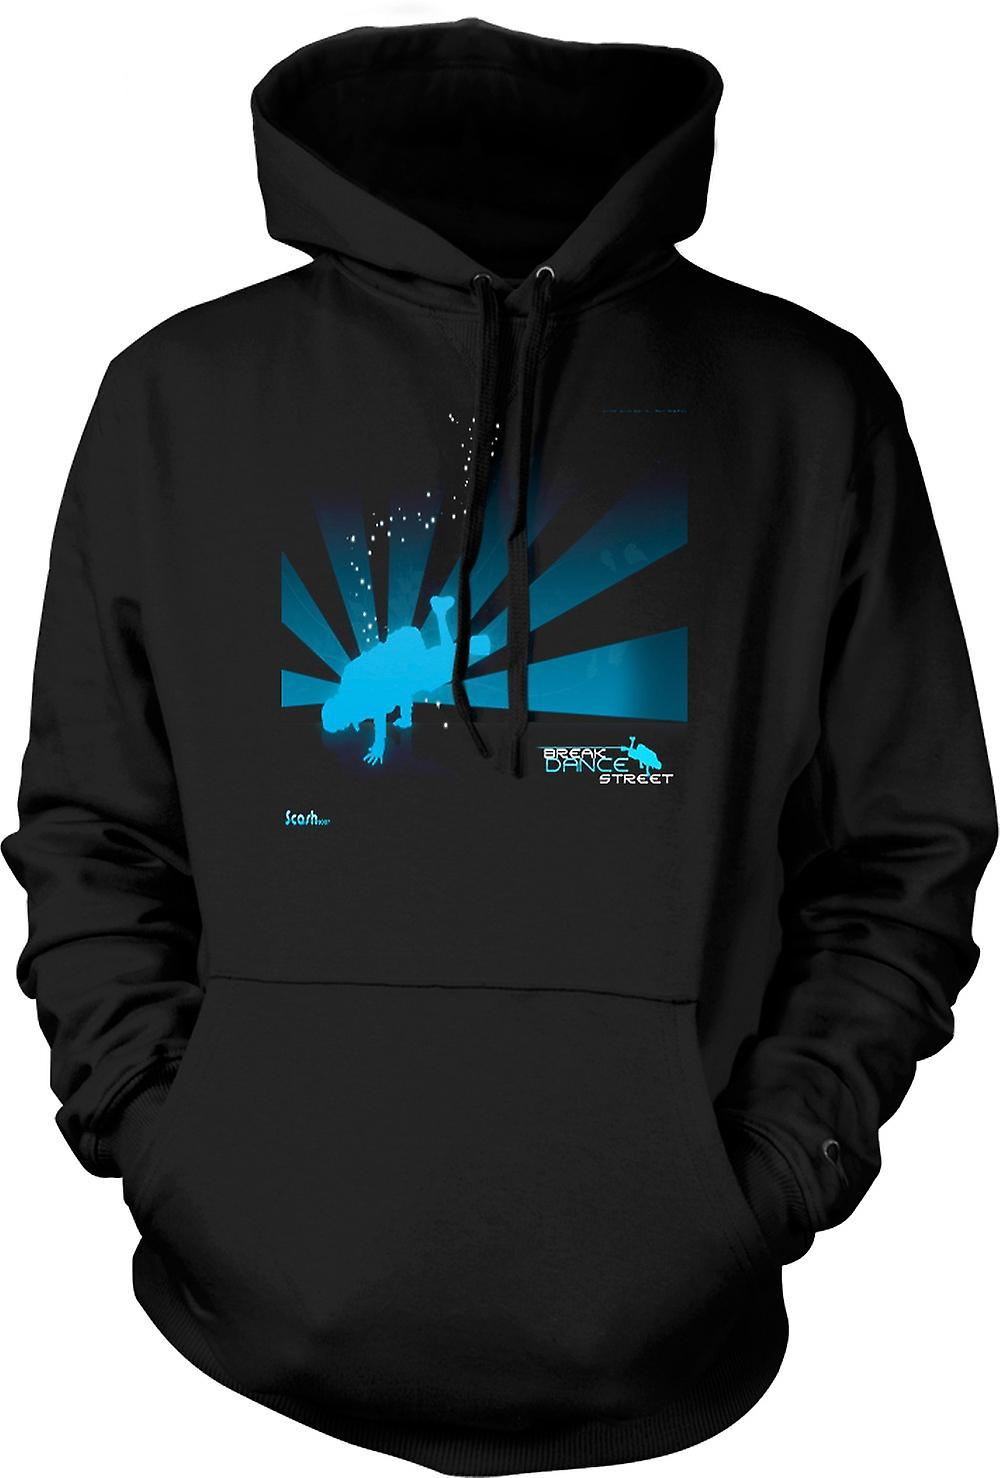 Mens Hoodie - Break Dance Street